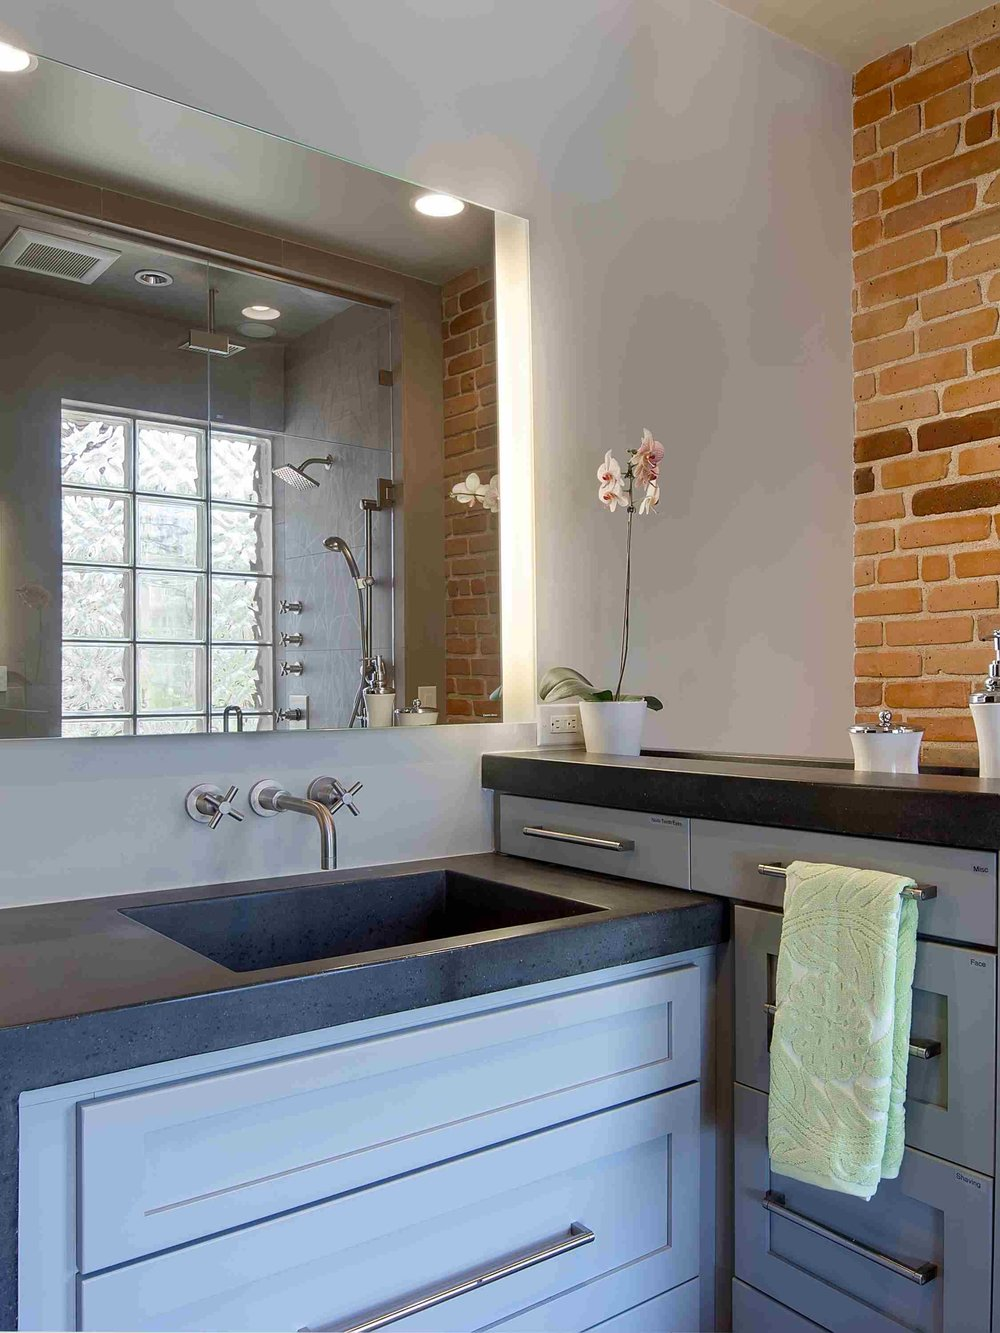 exposed brick and concrete — sanctuary kitchen and bath desi-2.jpg